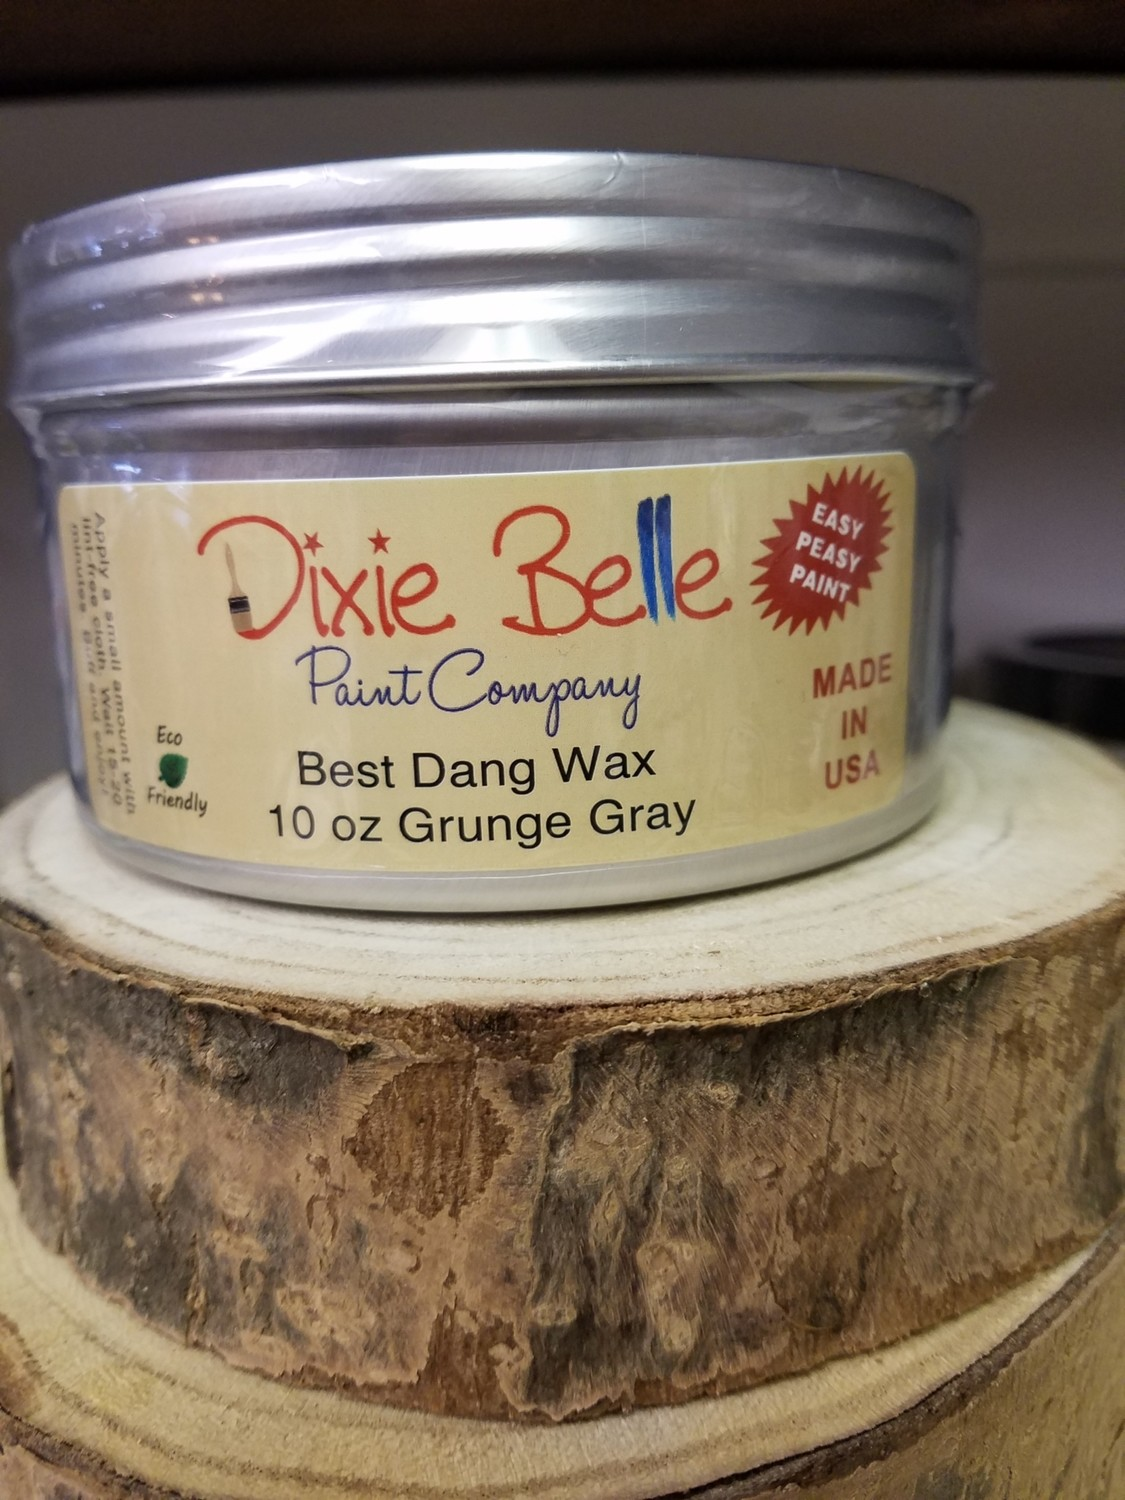 Dixie Belle Best Dang Wax Grunge Grey